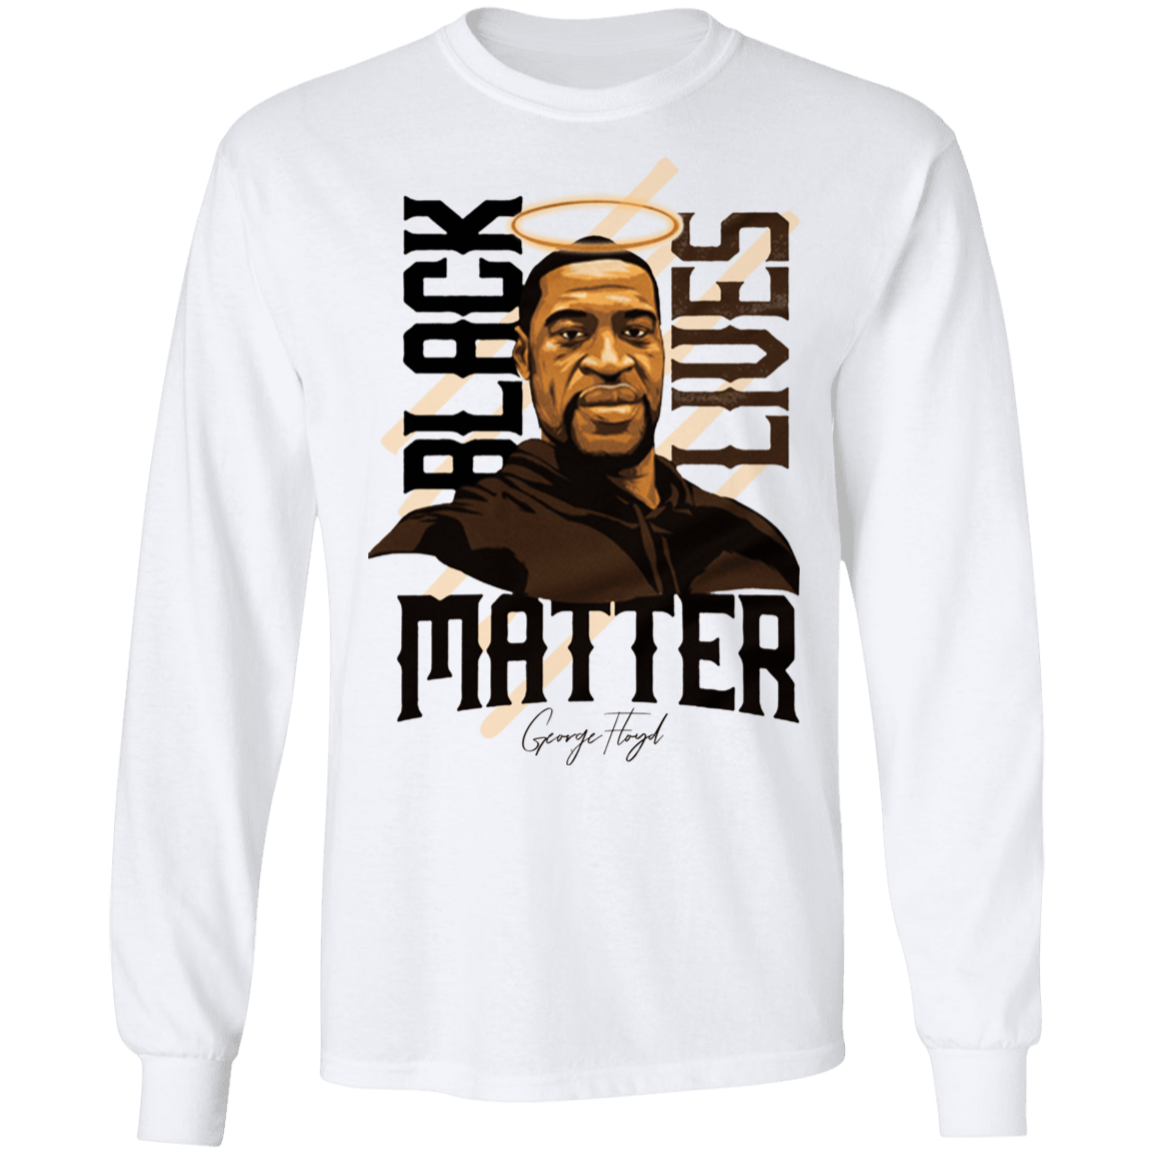 Black Lives Matter Sweatshirt Say His Name George Floyd Long Sleeve Blm